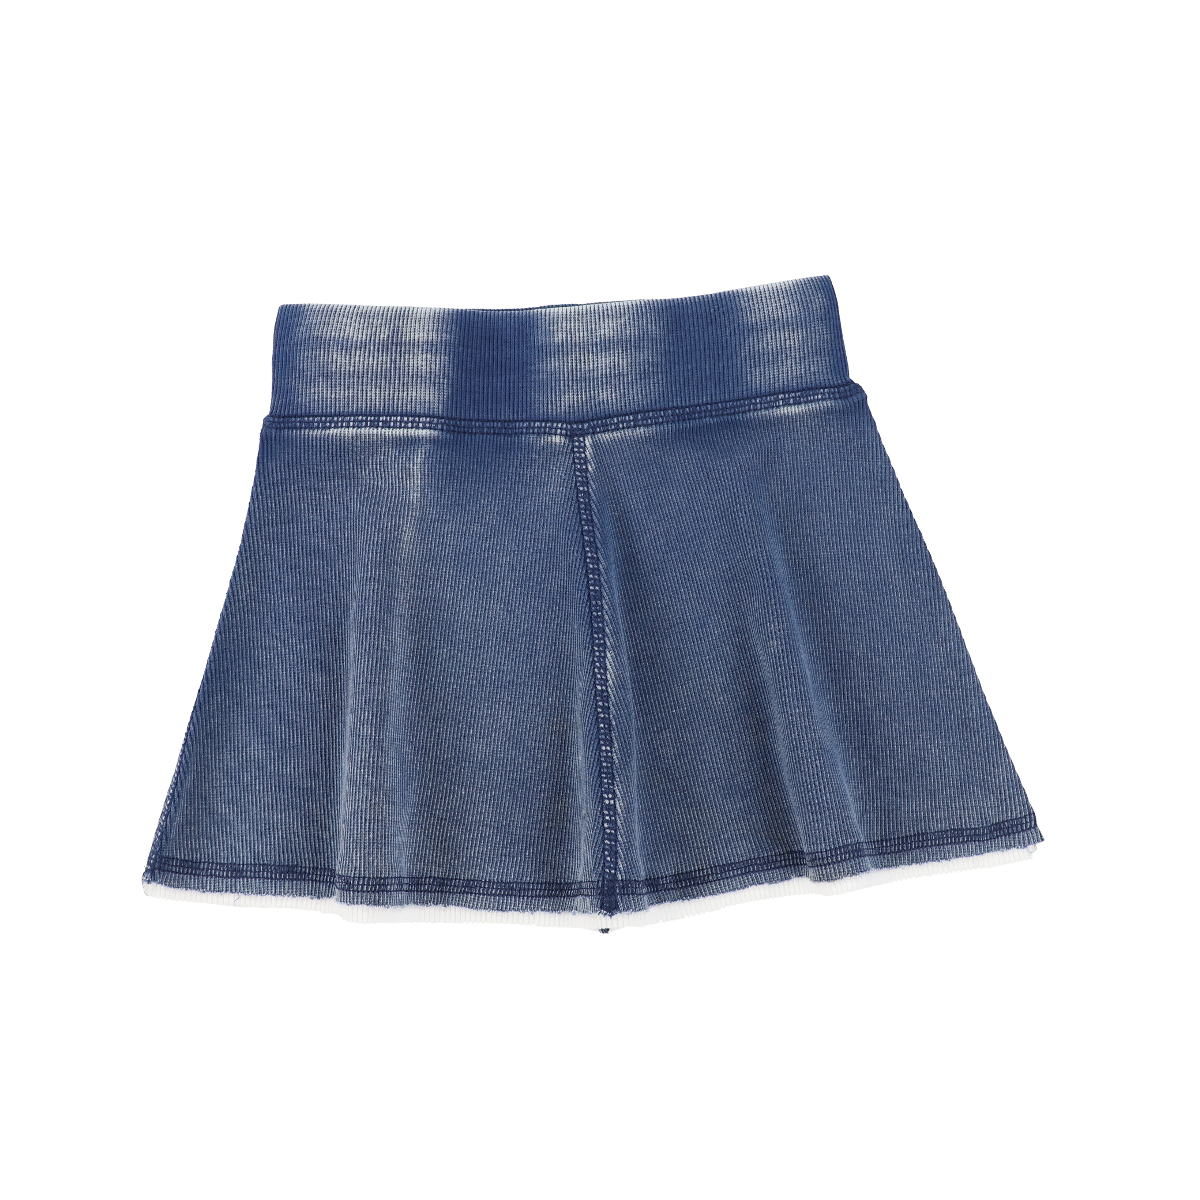 Analogie Blue Wash Denim Skirt